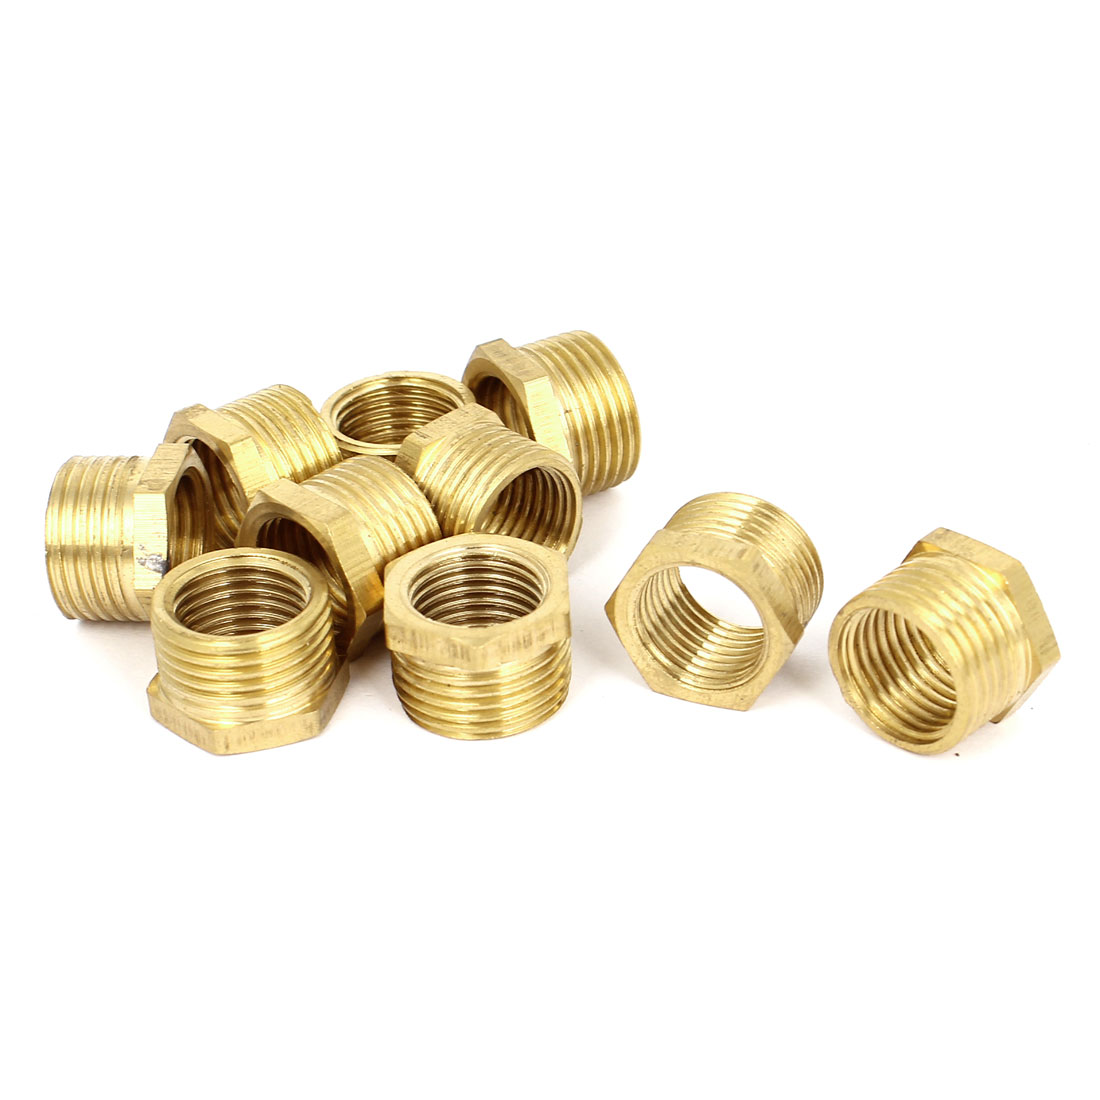 3/8BSP Male x 1/4BSP Female Brass Pipe Water Gas Reducing Hex Bushing 10pcs